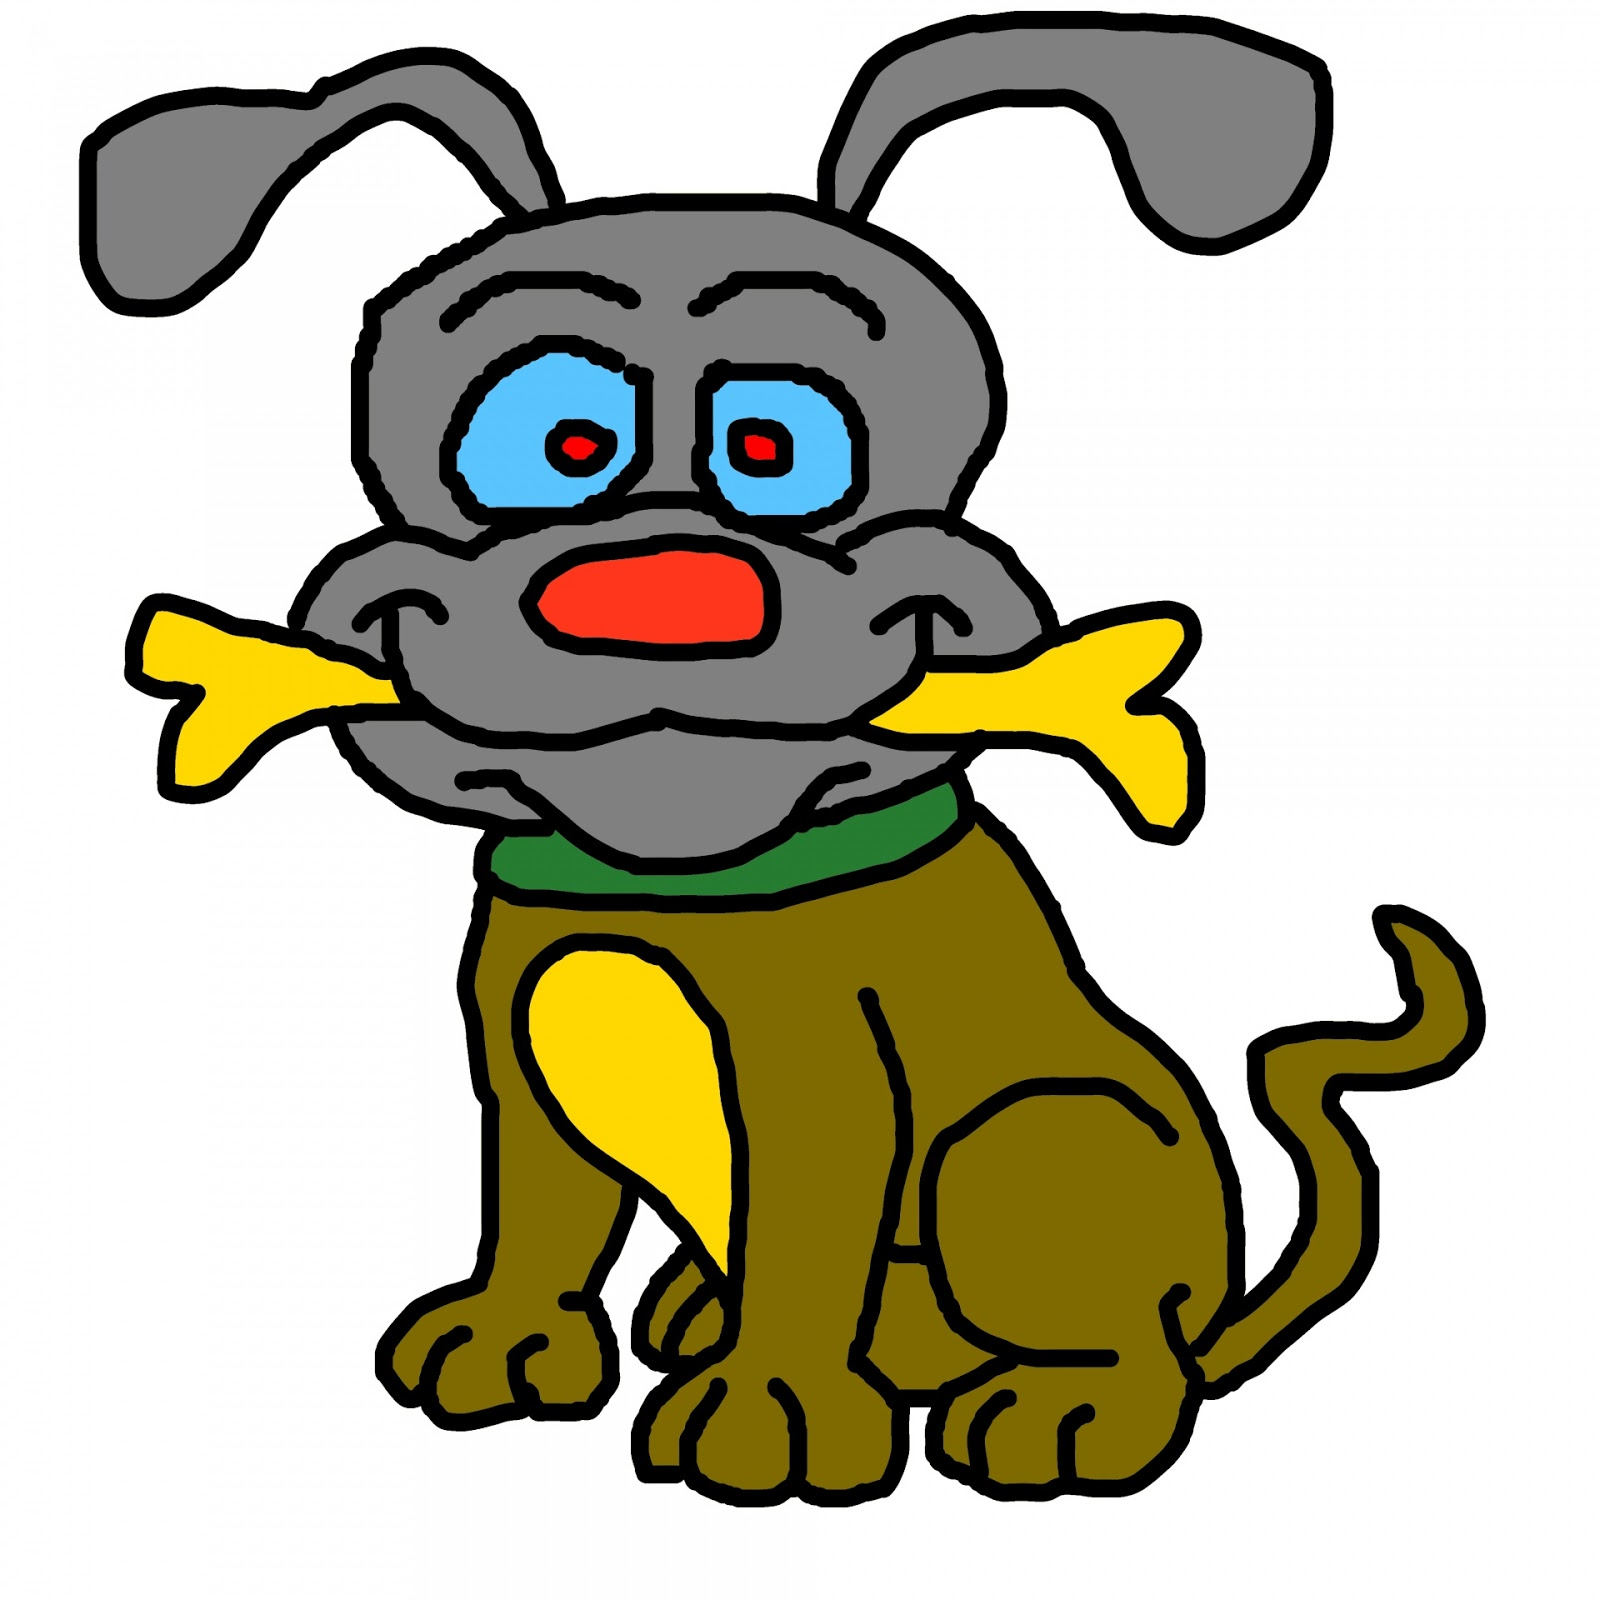 1600x1600 Cute Dog Black And White Clip Art Images Free Download